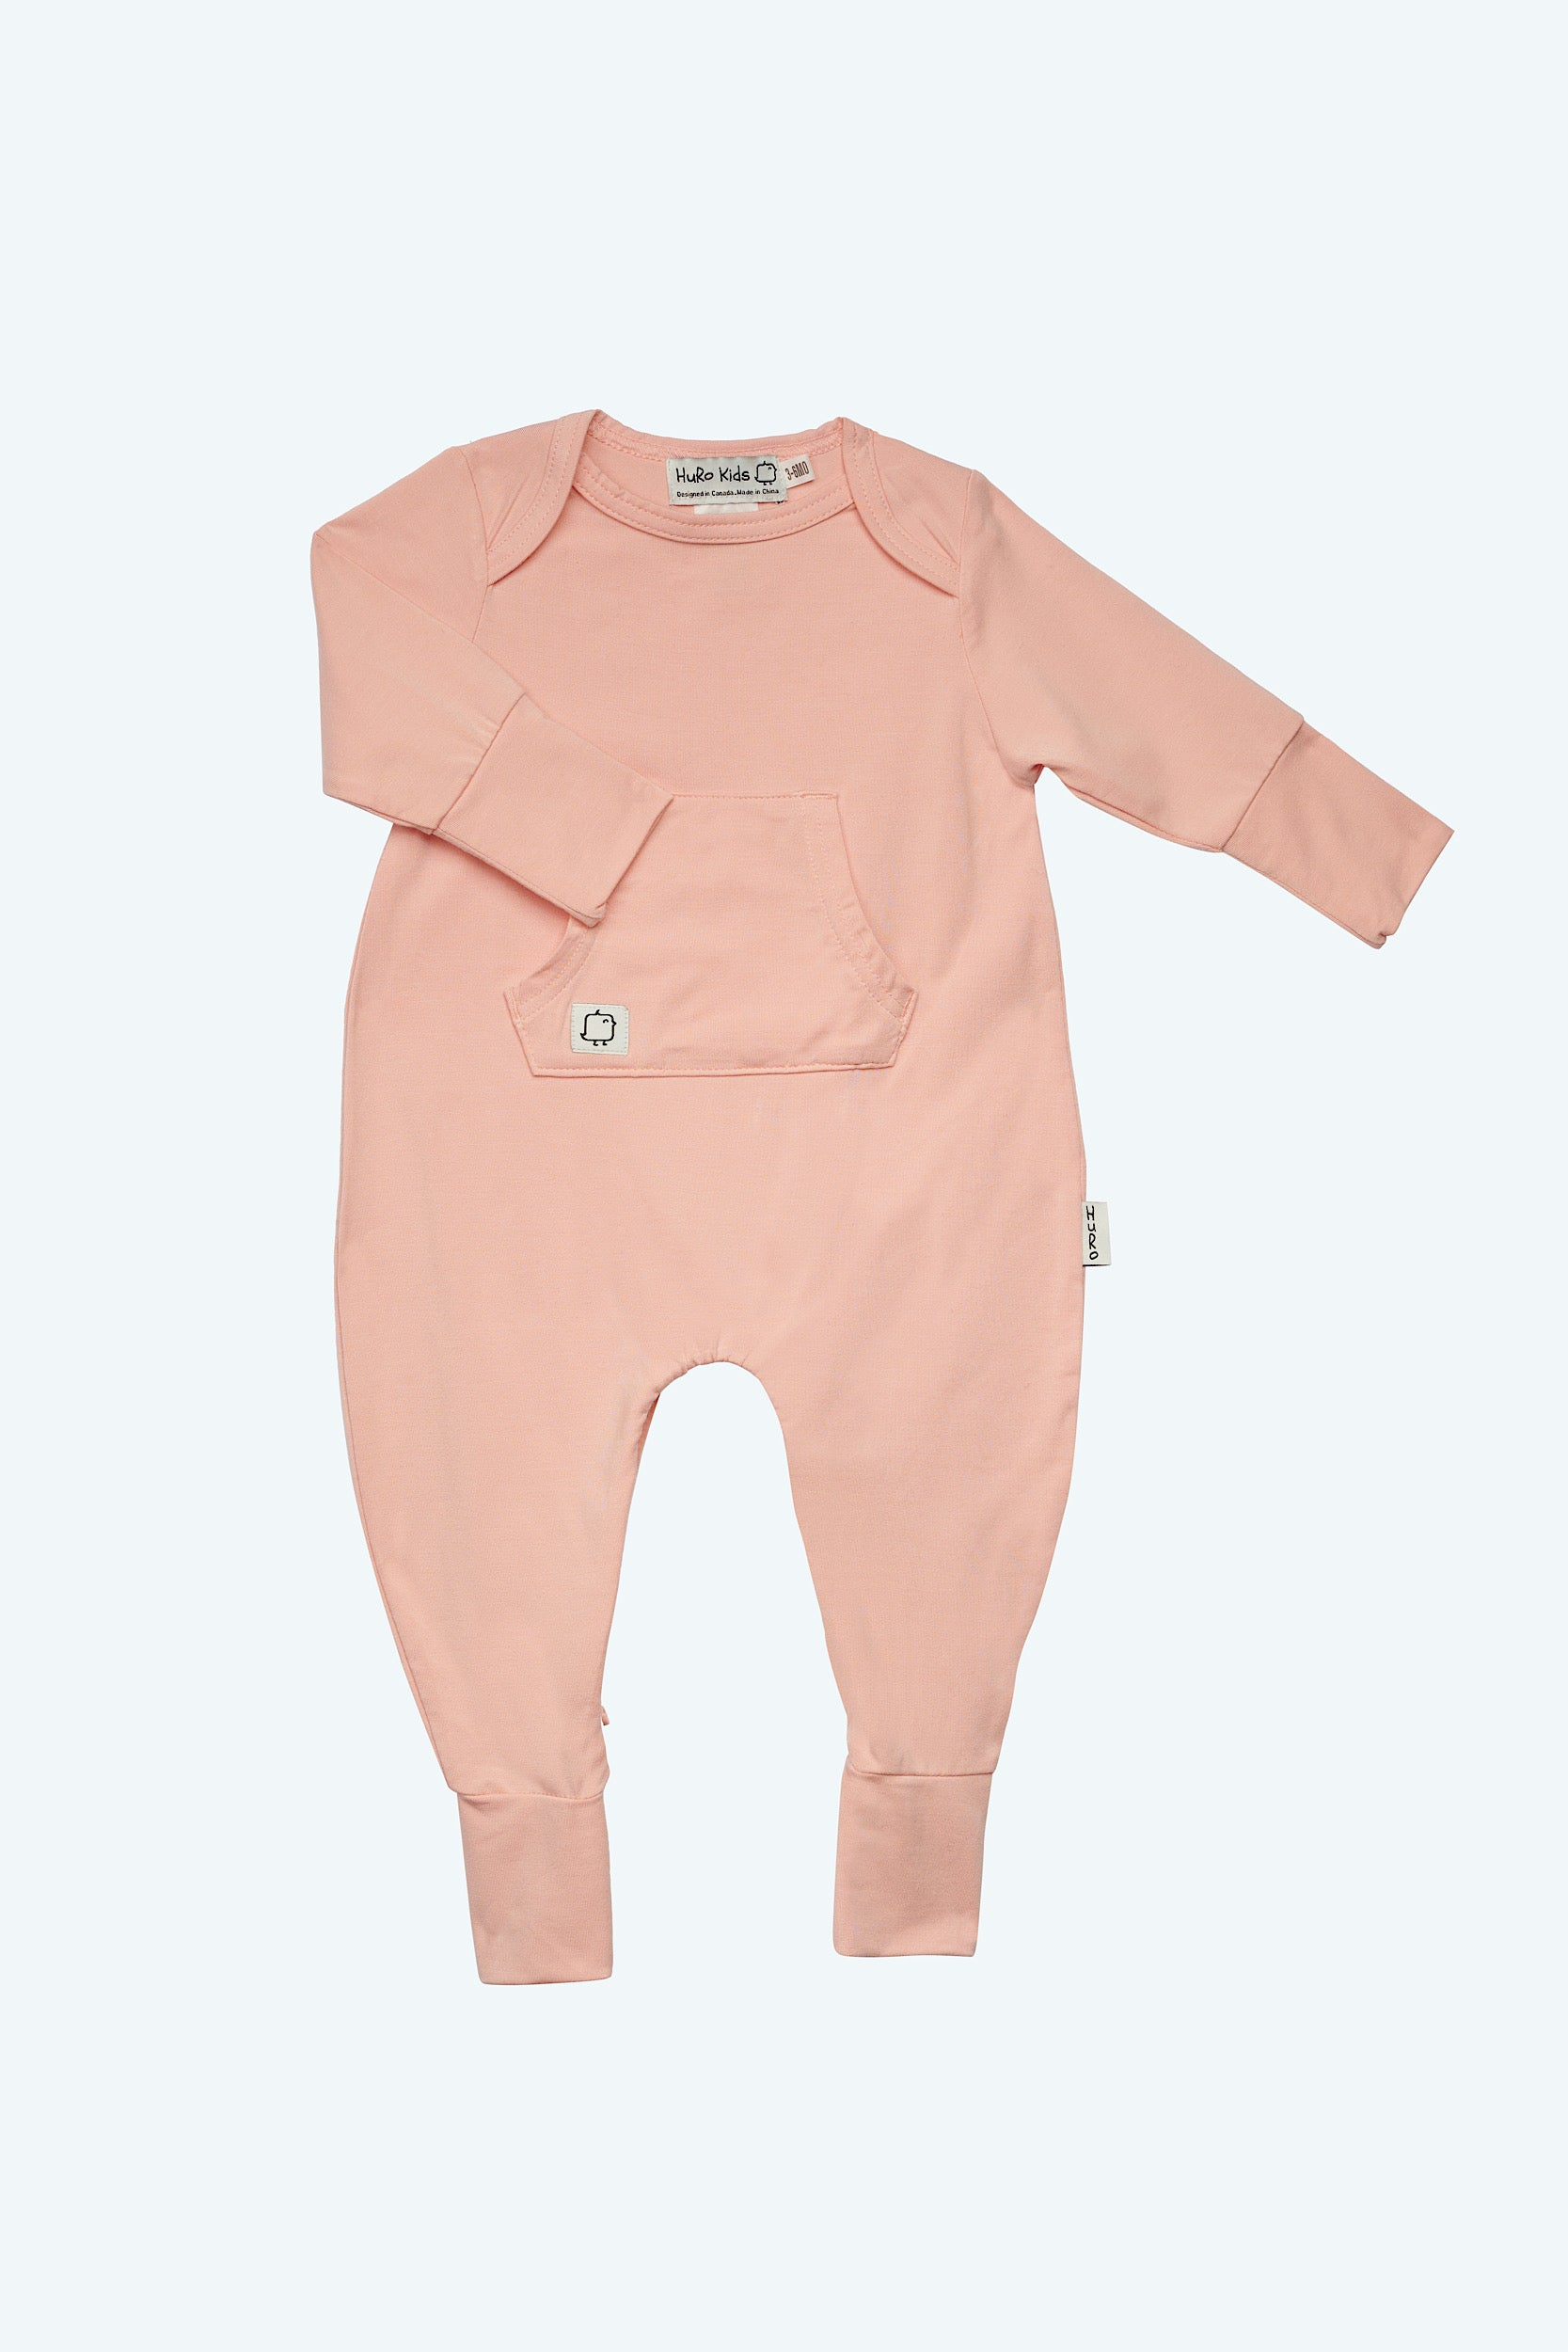 Perfect Onesie - Blush - HuRo Kids Clothing